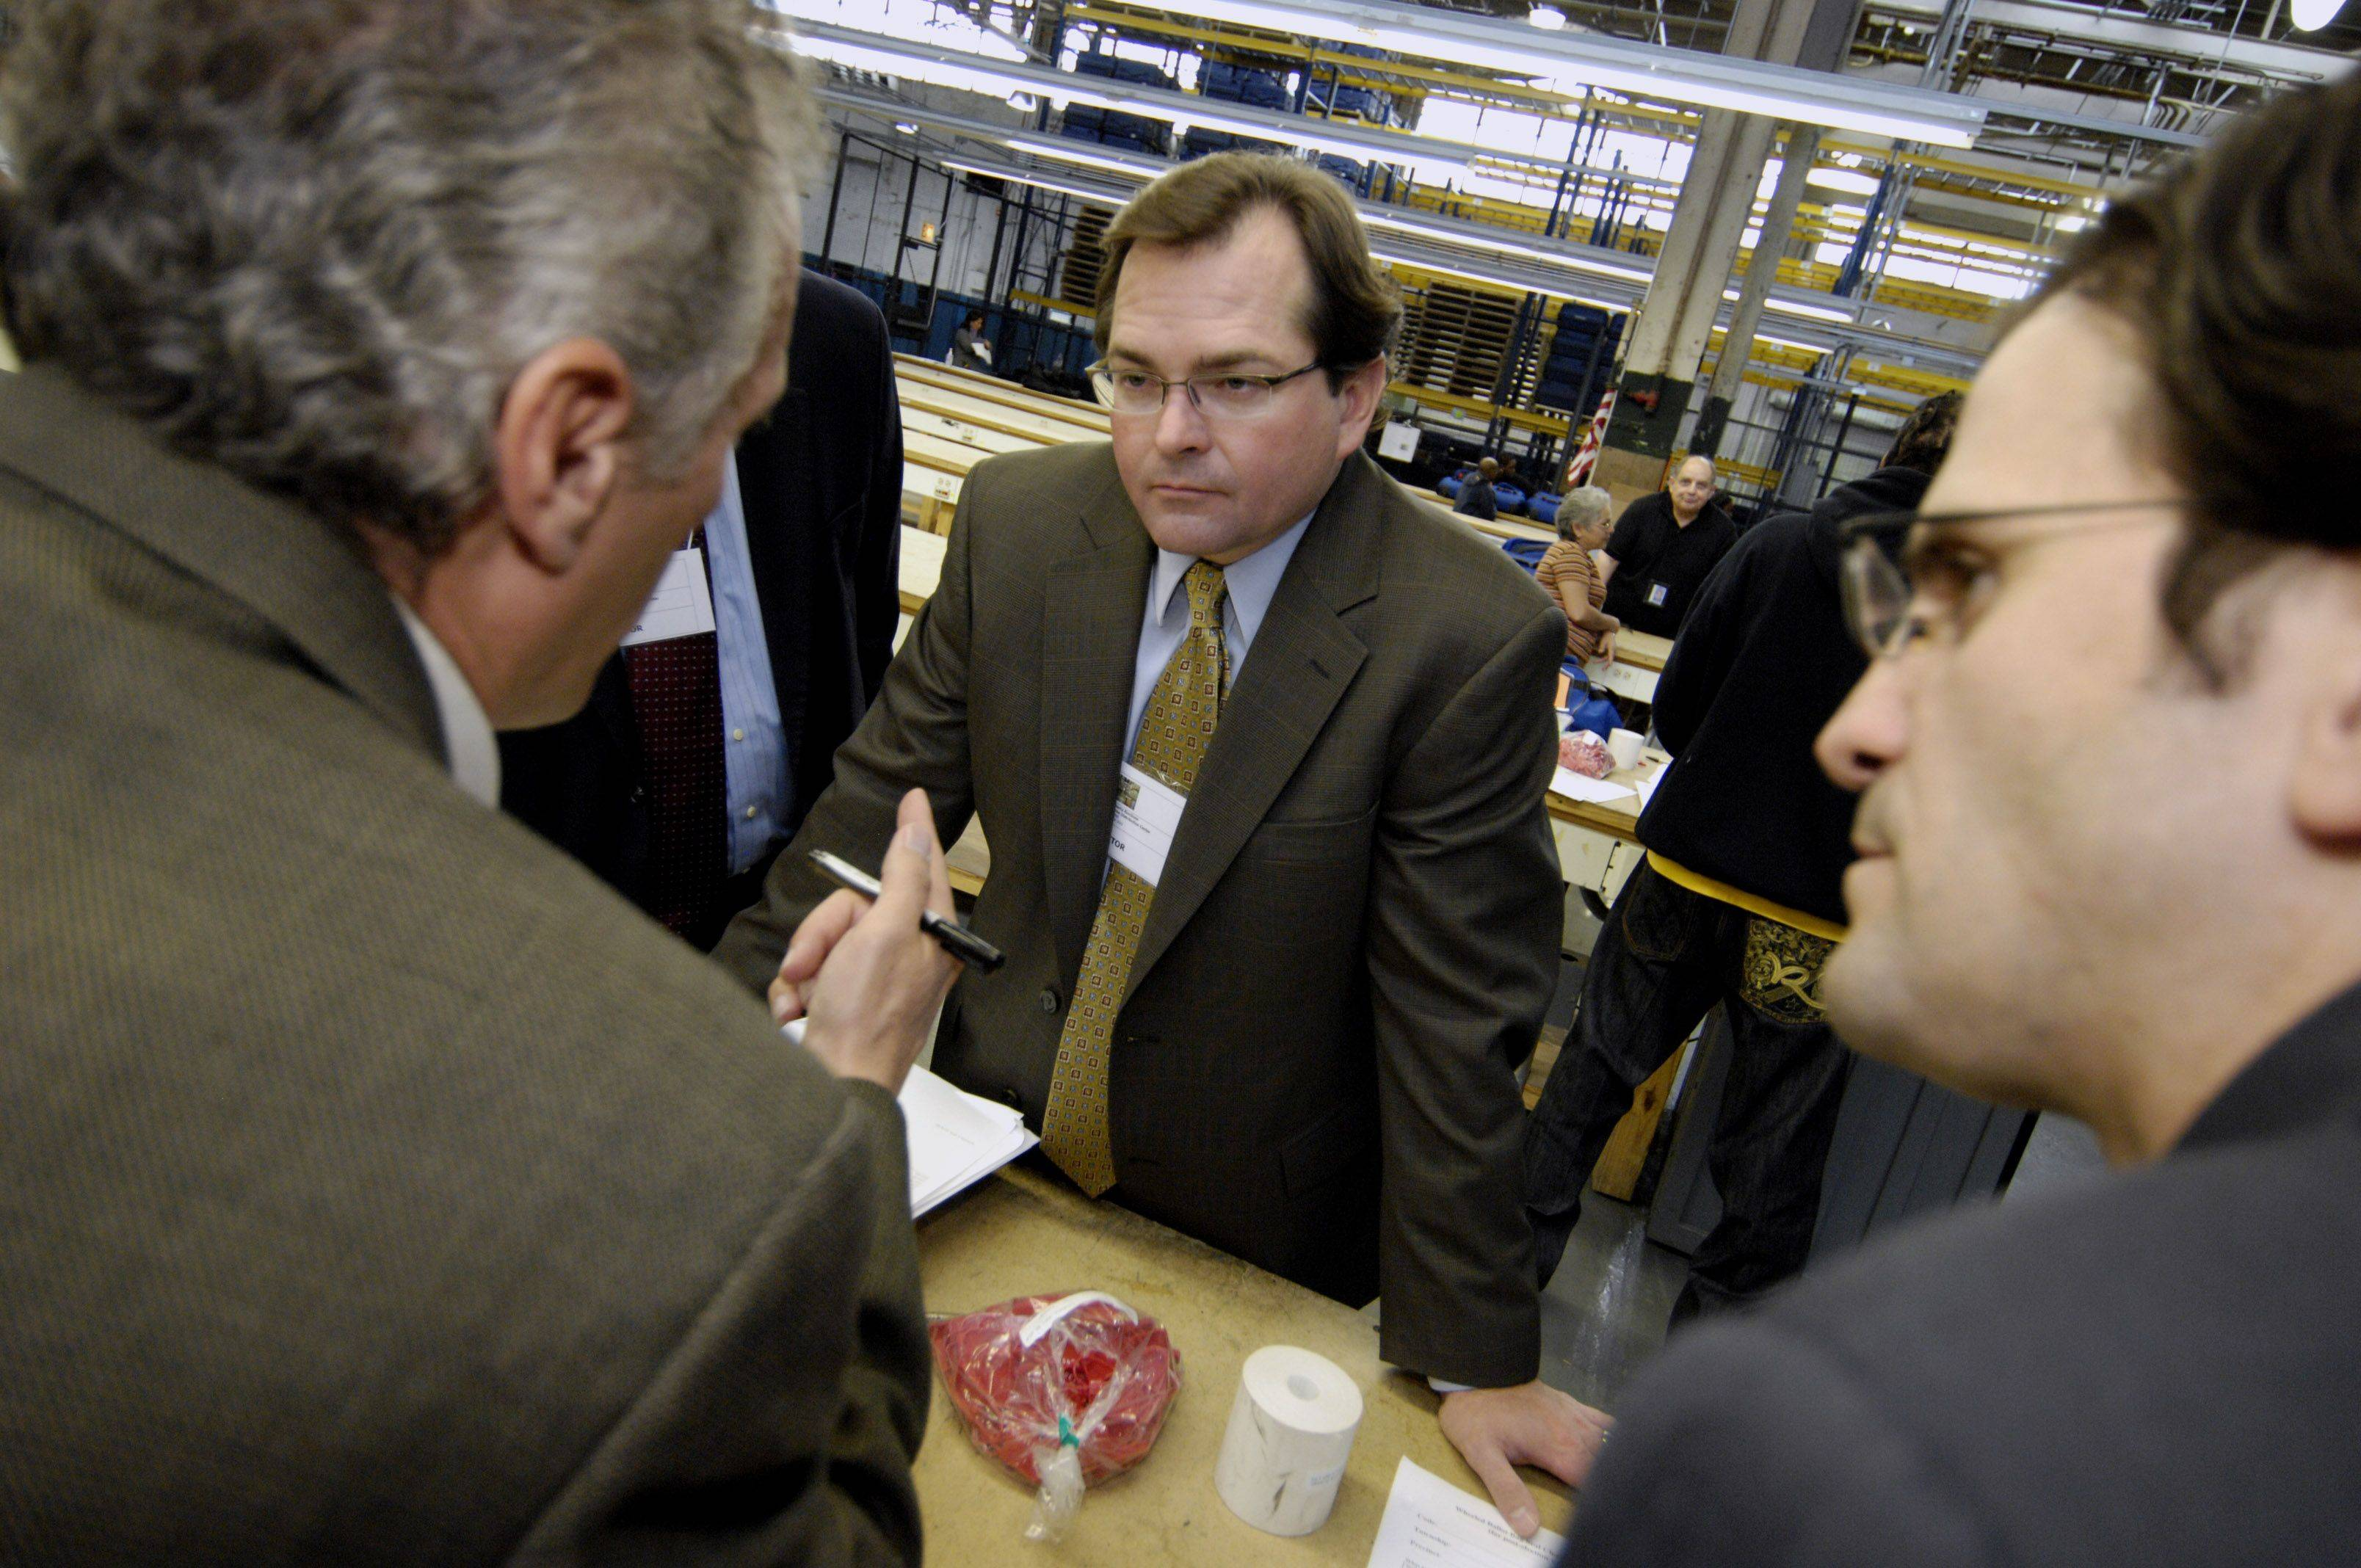 General Counsel for the Illinois Republican Party, Brien Sheahan talks with Joe Walsh representatives Nick and Chris Provenzano as election ballots from Cook County are counted at the Cook County Clerk Election Warehouse in Chicago. Sheahan was representing the entire Republican party including Governor candidate Bill Brady.